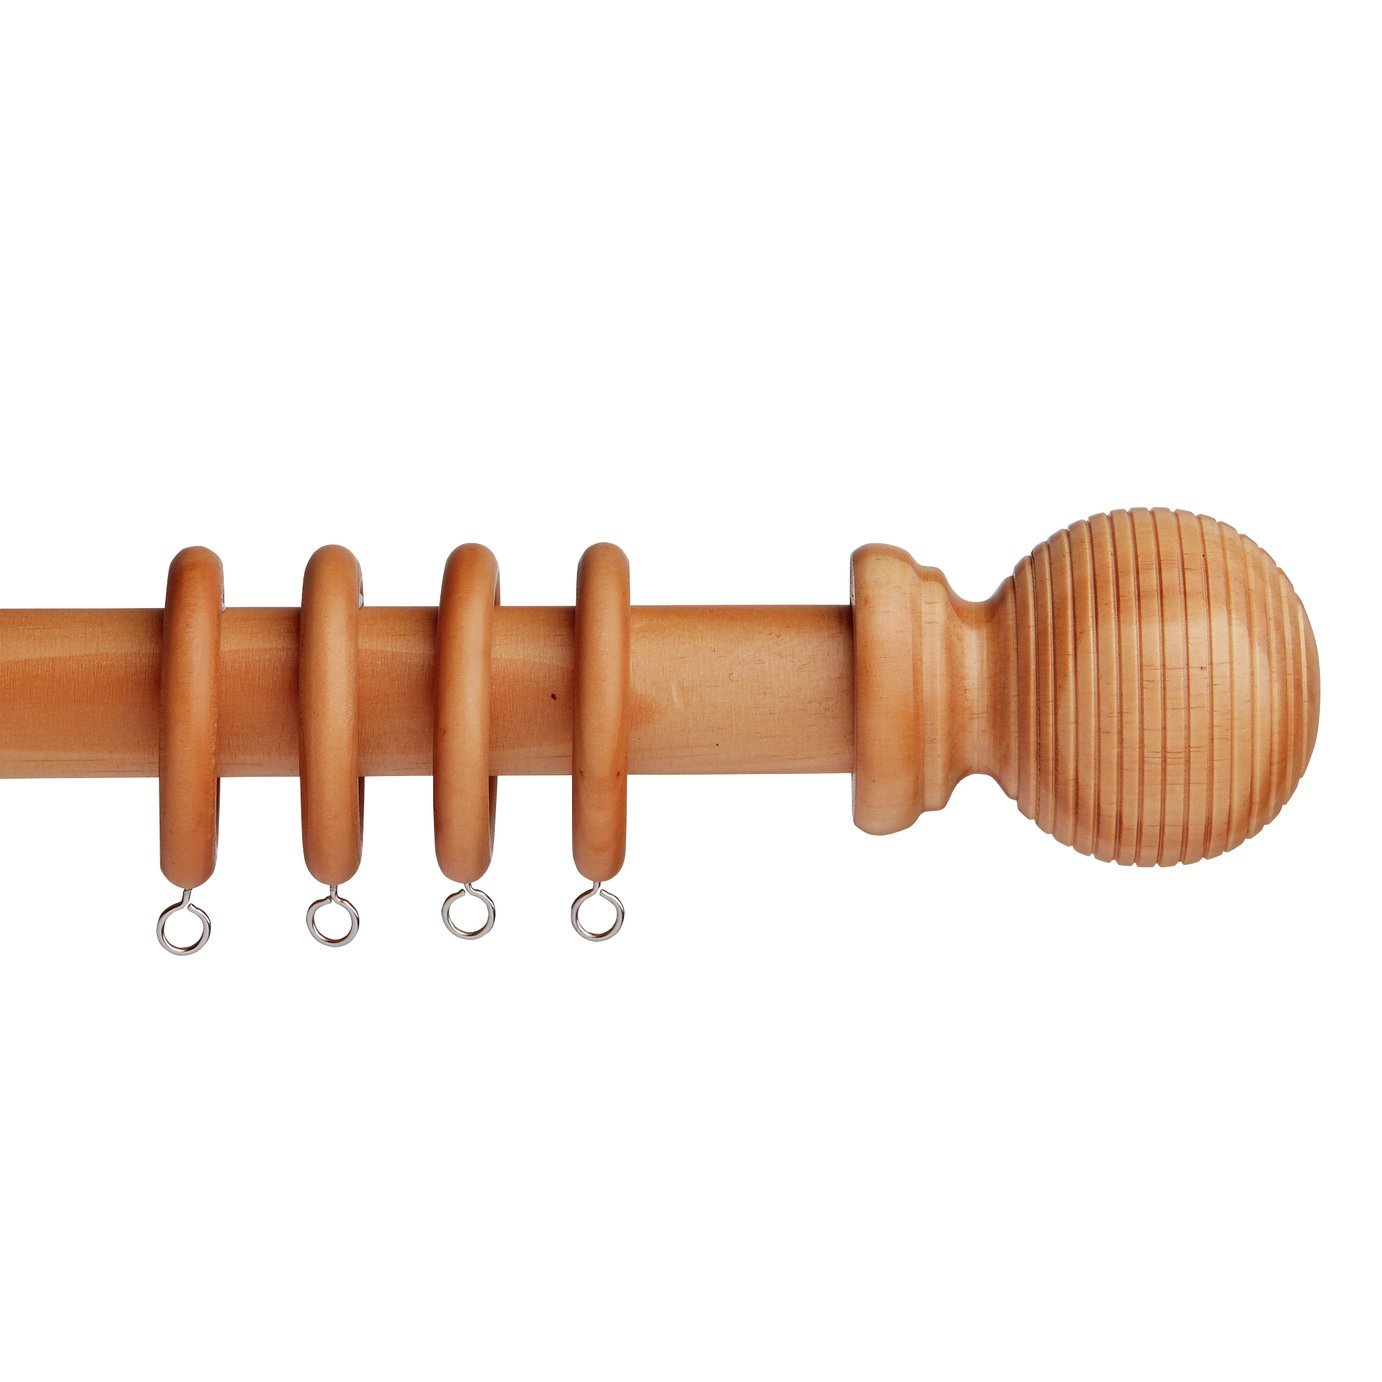 Argos Home 2.4m Grooved Ball Wooden Curtain Pole - Natural